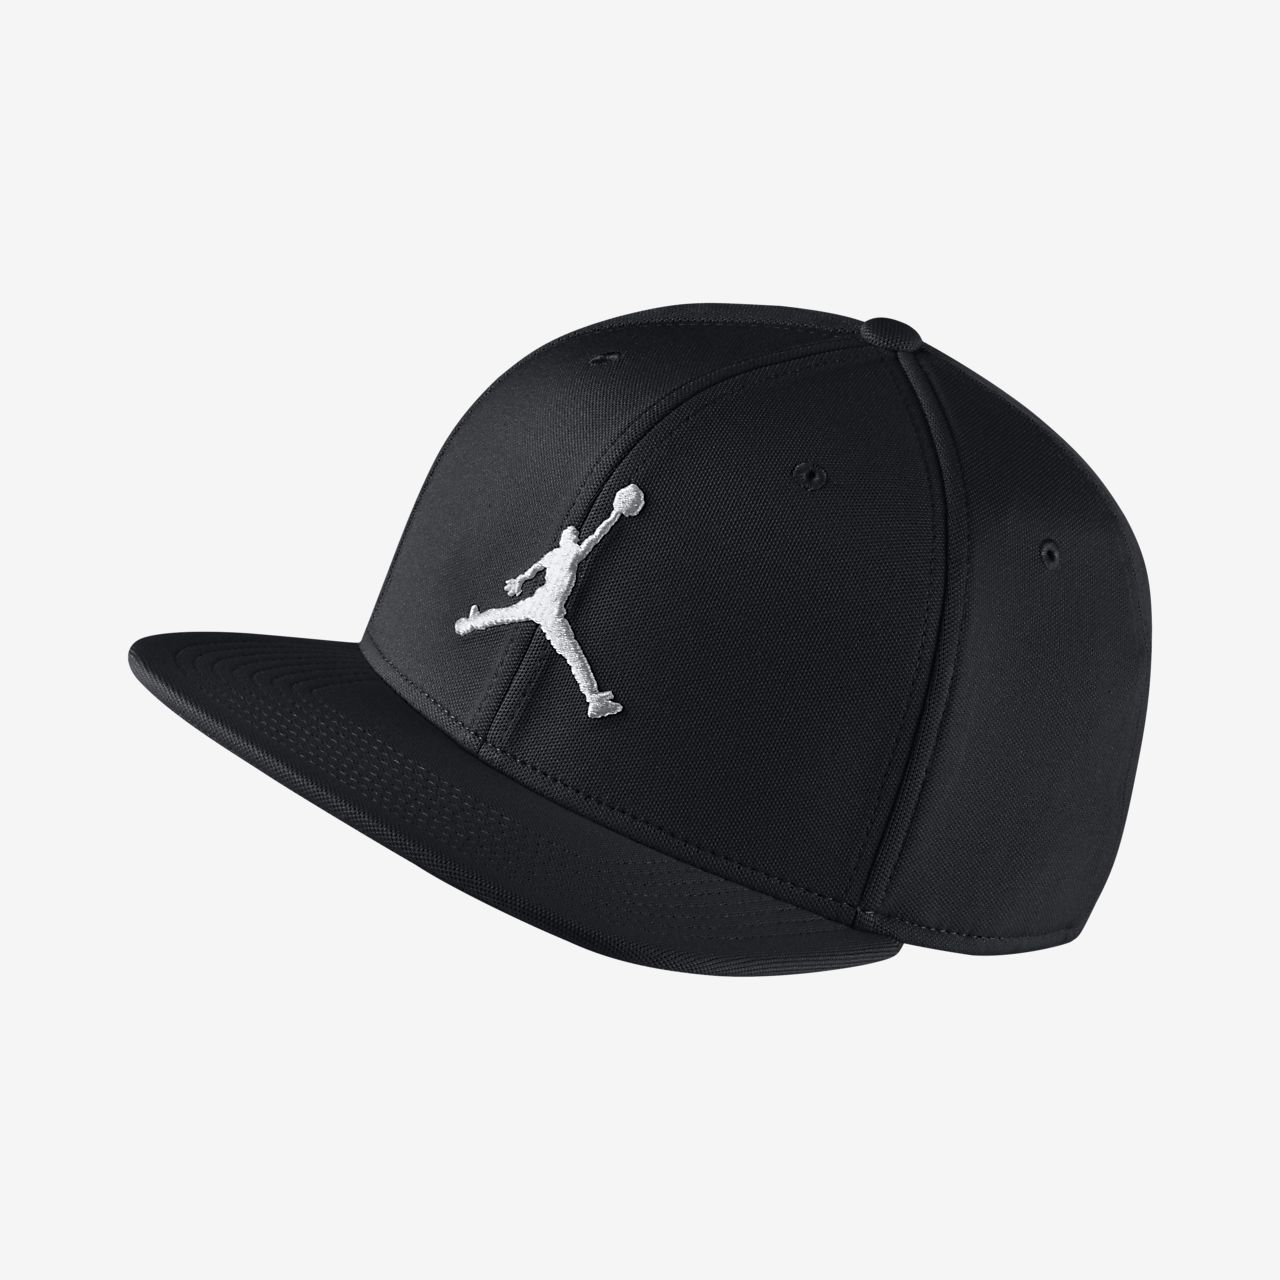 388be36bb2d8e5 Jordan Jumpman Snapback Adjustable Hat. Nike.com AU